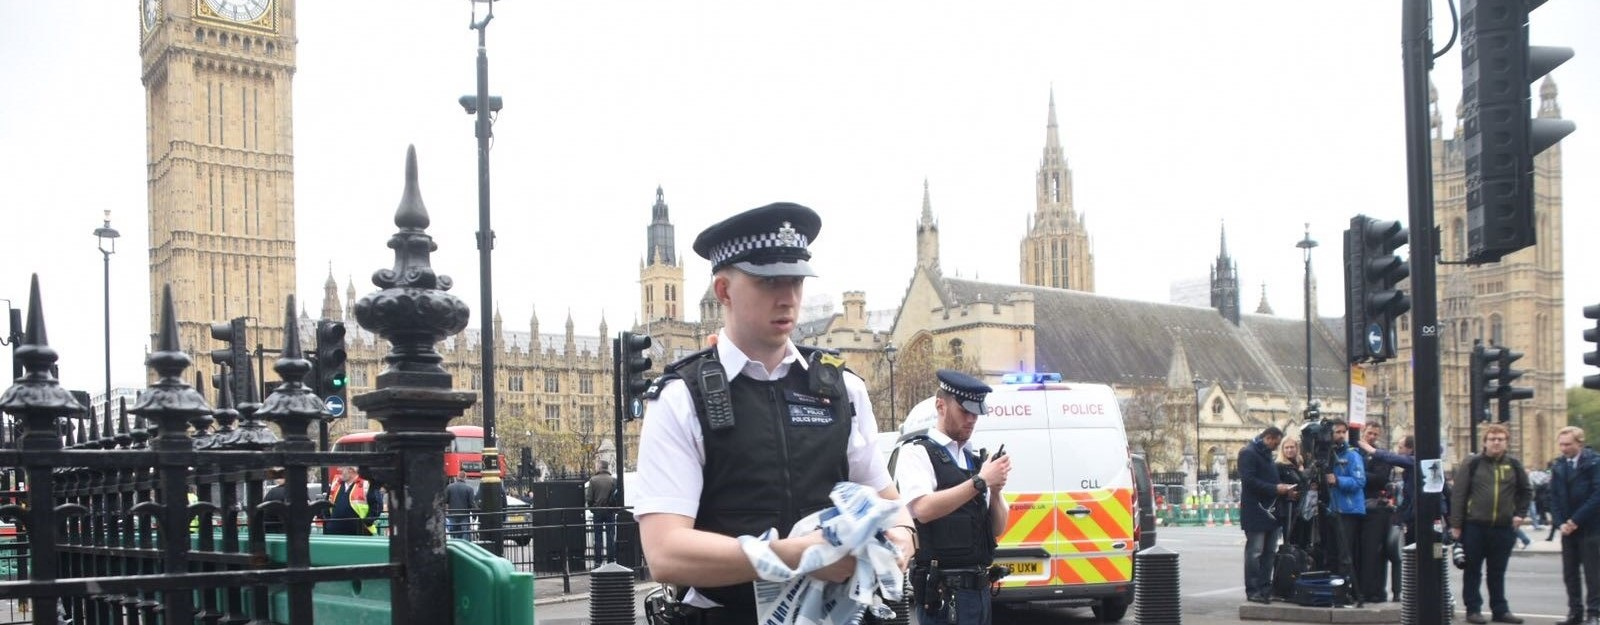 British police take security measurements near the Houses of Parliament on April 27 after a man was arrested under the terrorism act. (Photo: Behlül Çetinkaya/Getty)